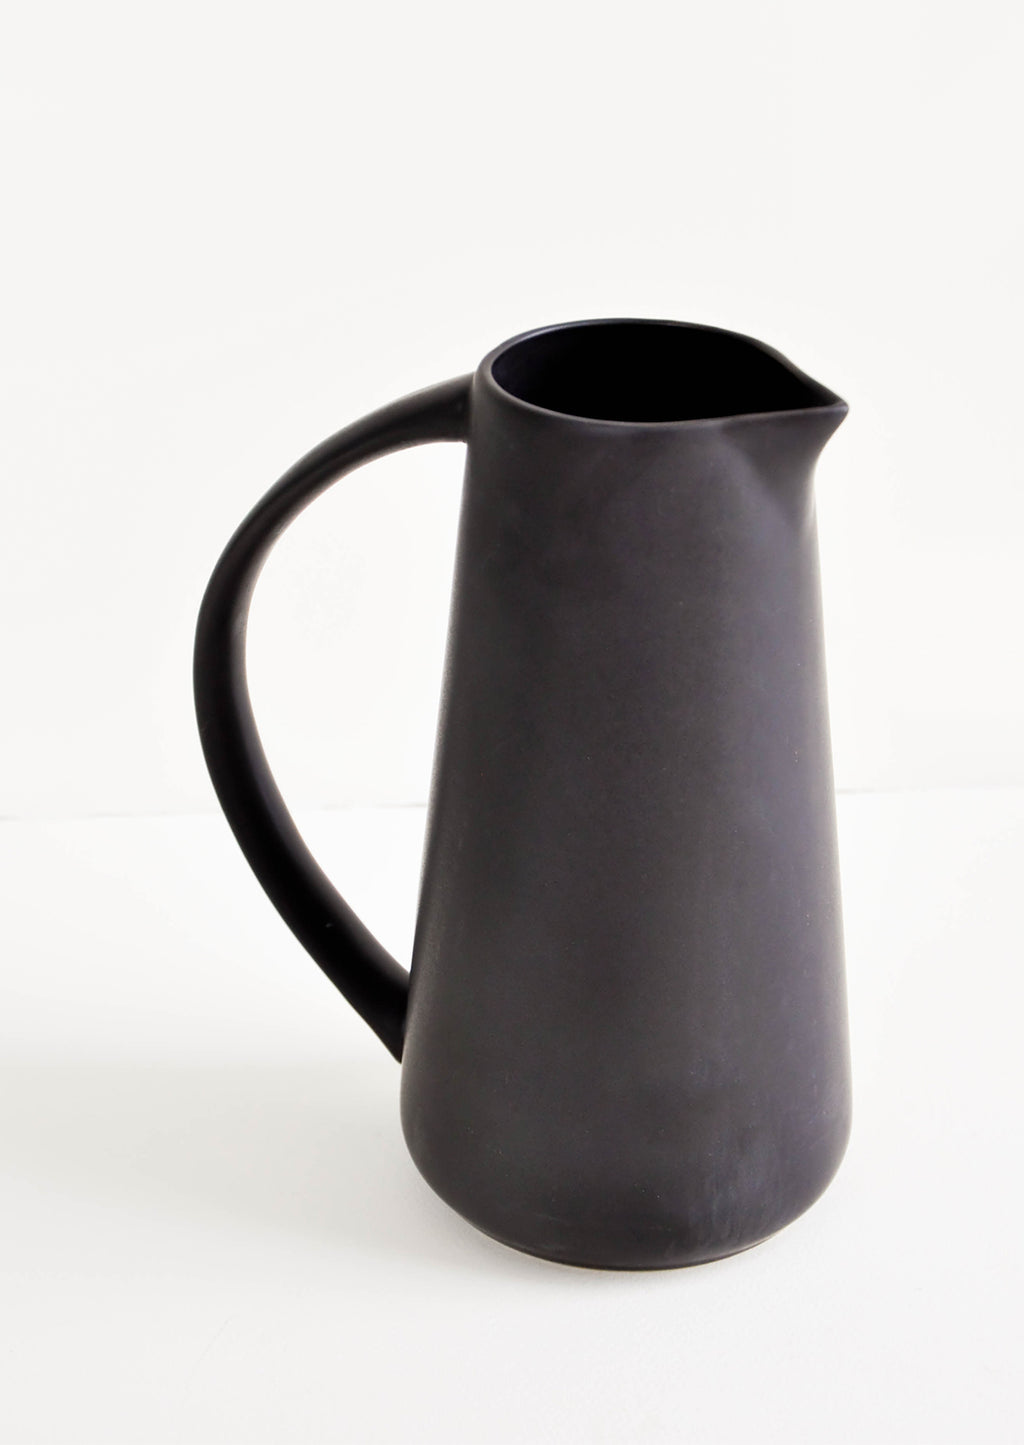 48 oz: Tuazon Ceramic Pitcher